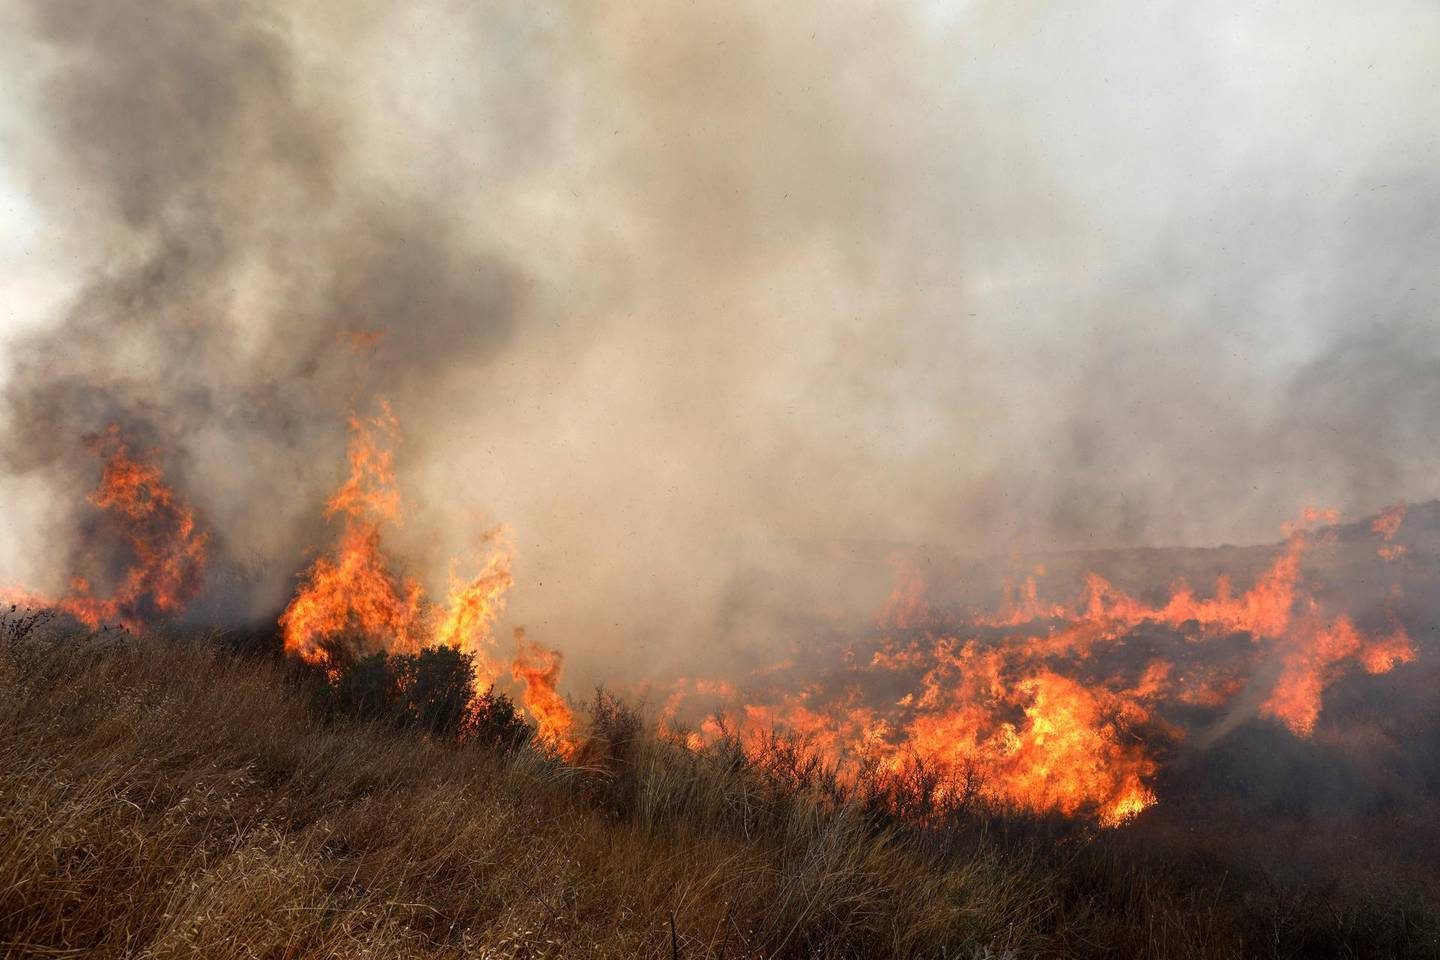 epa06786264 Fire that ignited at a field as a result of a Molotov cocktail kite that was sent from Gaza Strip few kilometers from the border with Gaza near Kibbutz Or Haner, in southern Israel, 05 June 2018. Media reports that after a cease-fire was achieved betweeen Israeli military and Palestinian militants in Gaza on 29 May 2018 Palestinians from Gaza continue to send Molotov kites to the Israeli territory and cause damage to thousands of acres of agriculture and nature reserves in Israel as Palestinians mark the 'Naksa Day' or the so-called Six-days war.  EPA/ABIR SULTAN